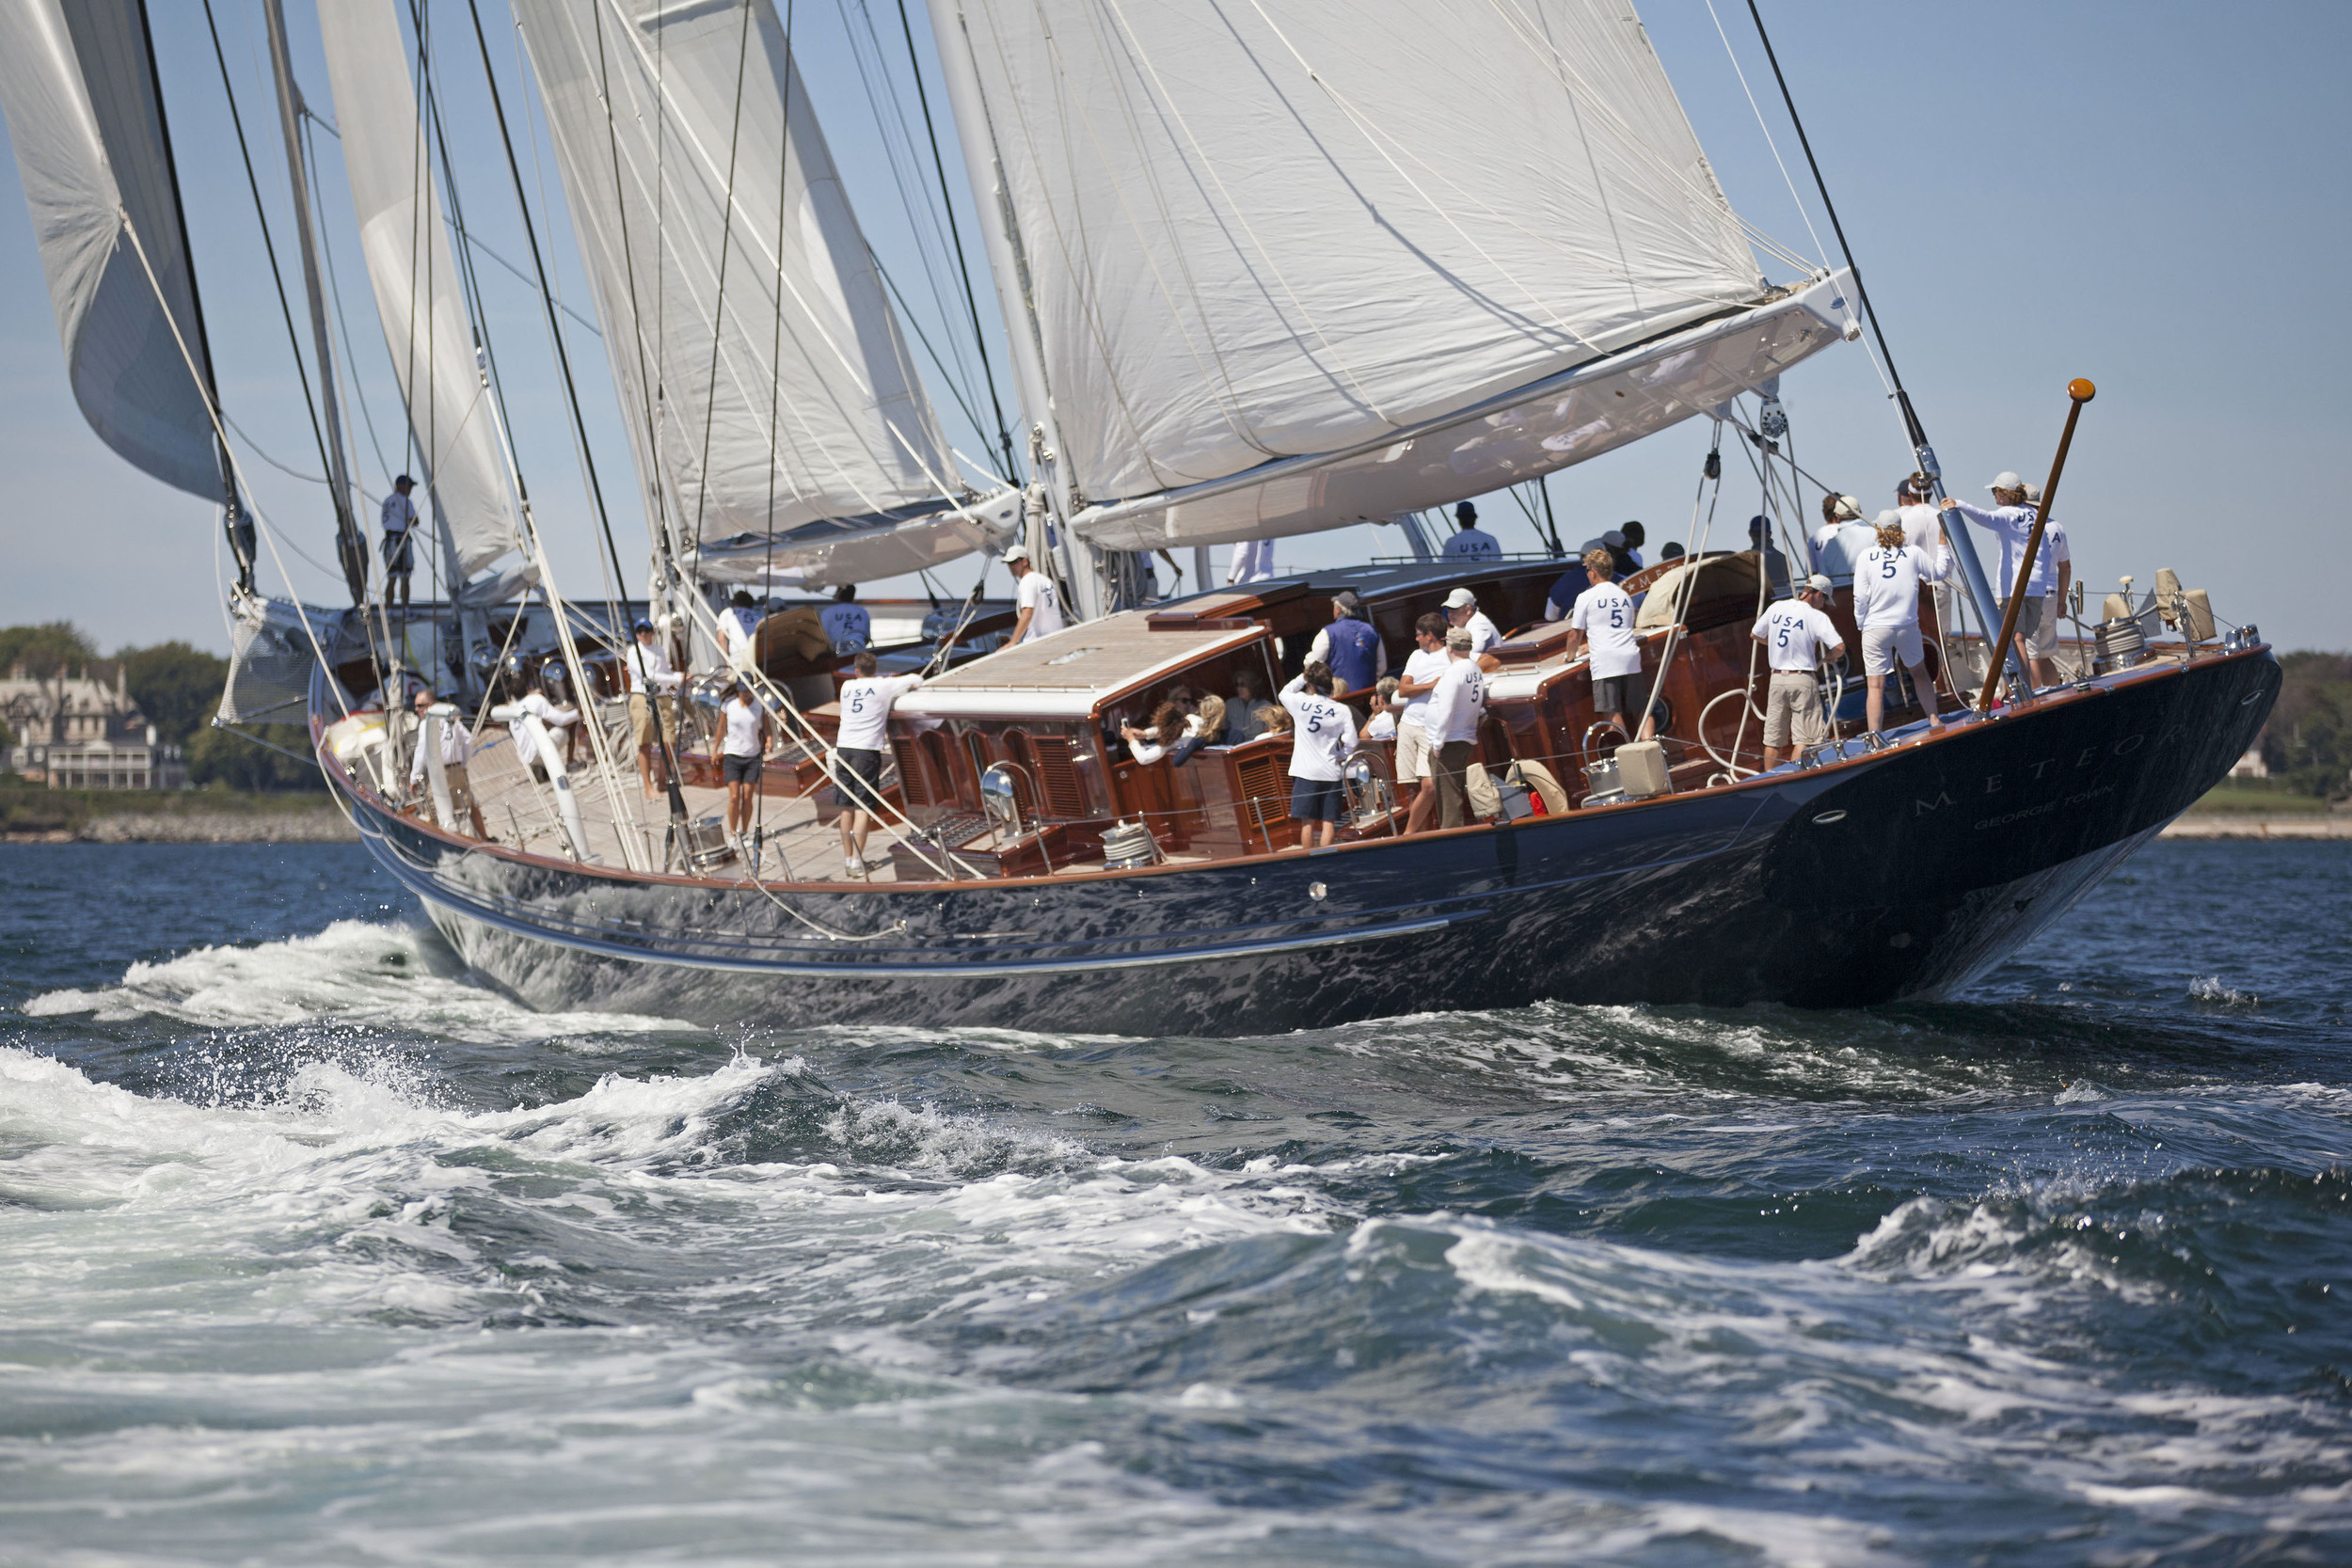 Meteor , the 170' (52 meter) schooner built by Royal Huisman will compete in the 2016 Candy Store Cup.(photo credit: Bill Black)